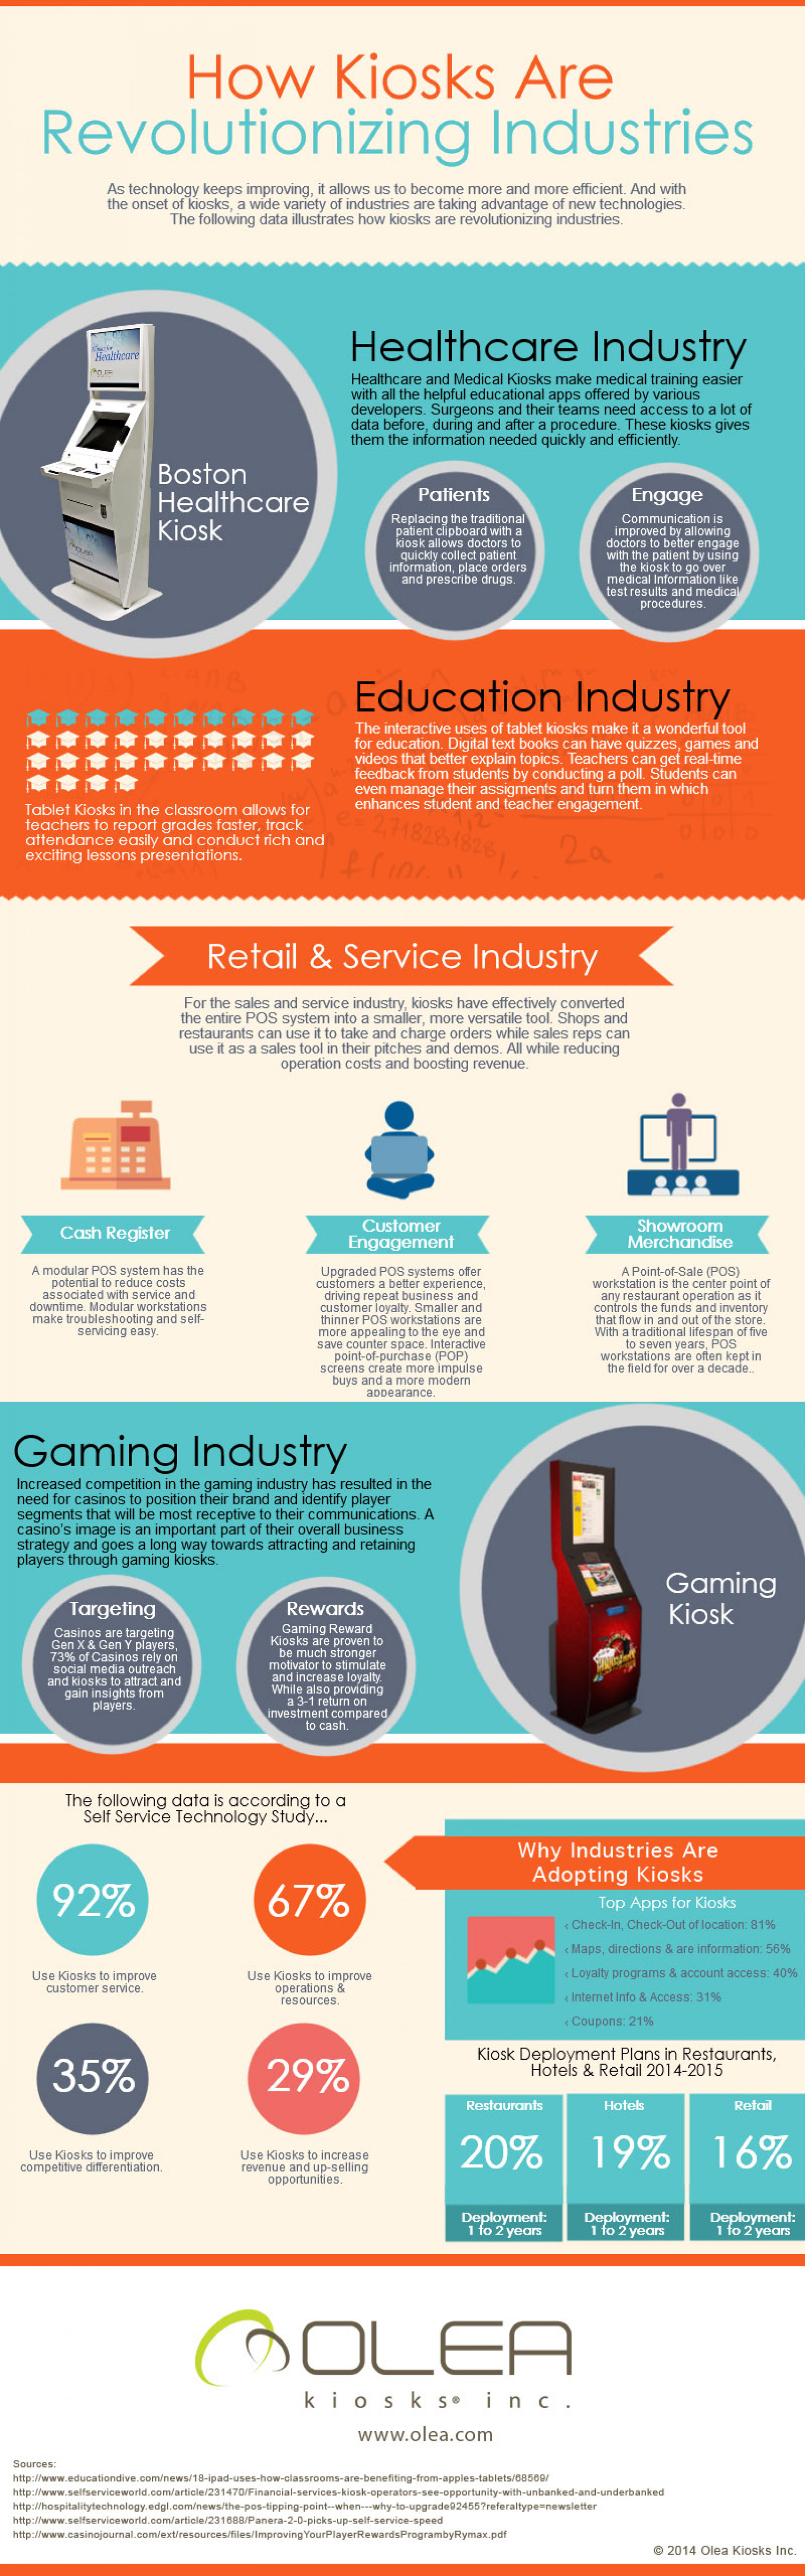 How Kiosks Are Revolutionizing Industries Infographic